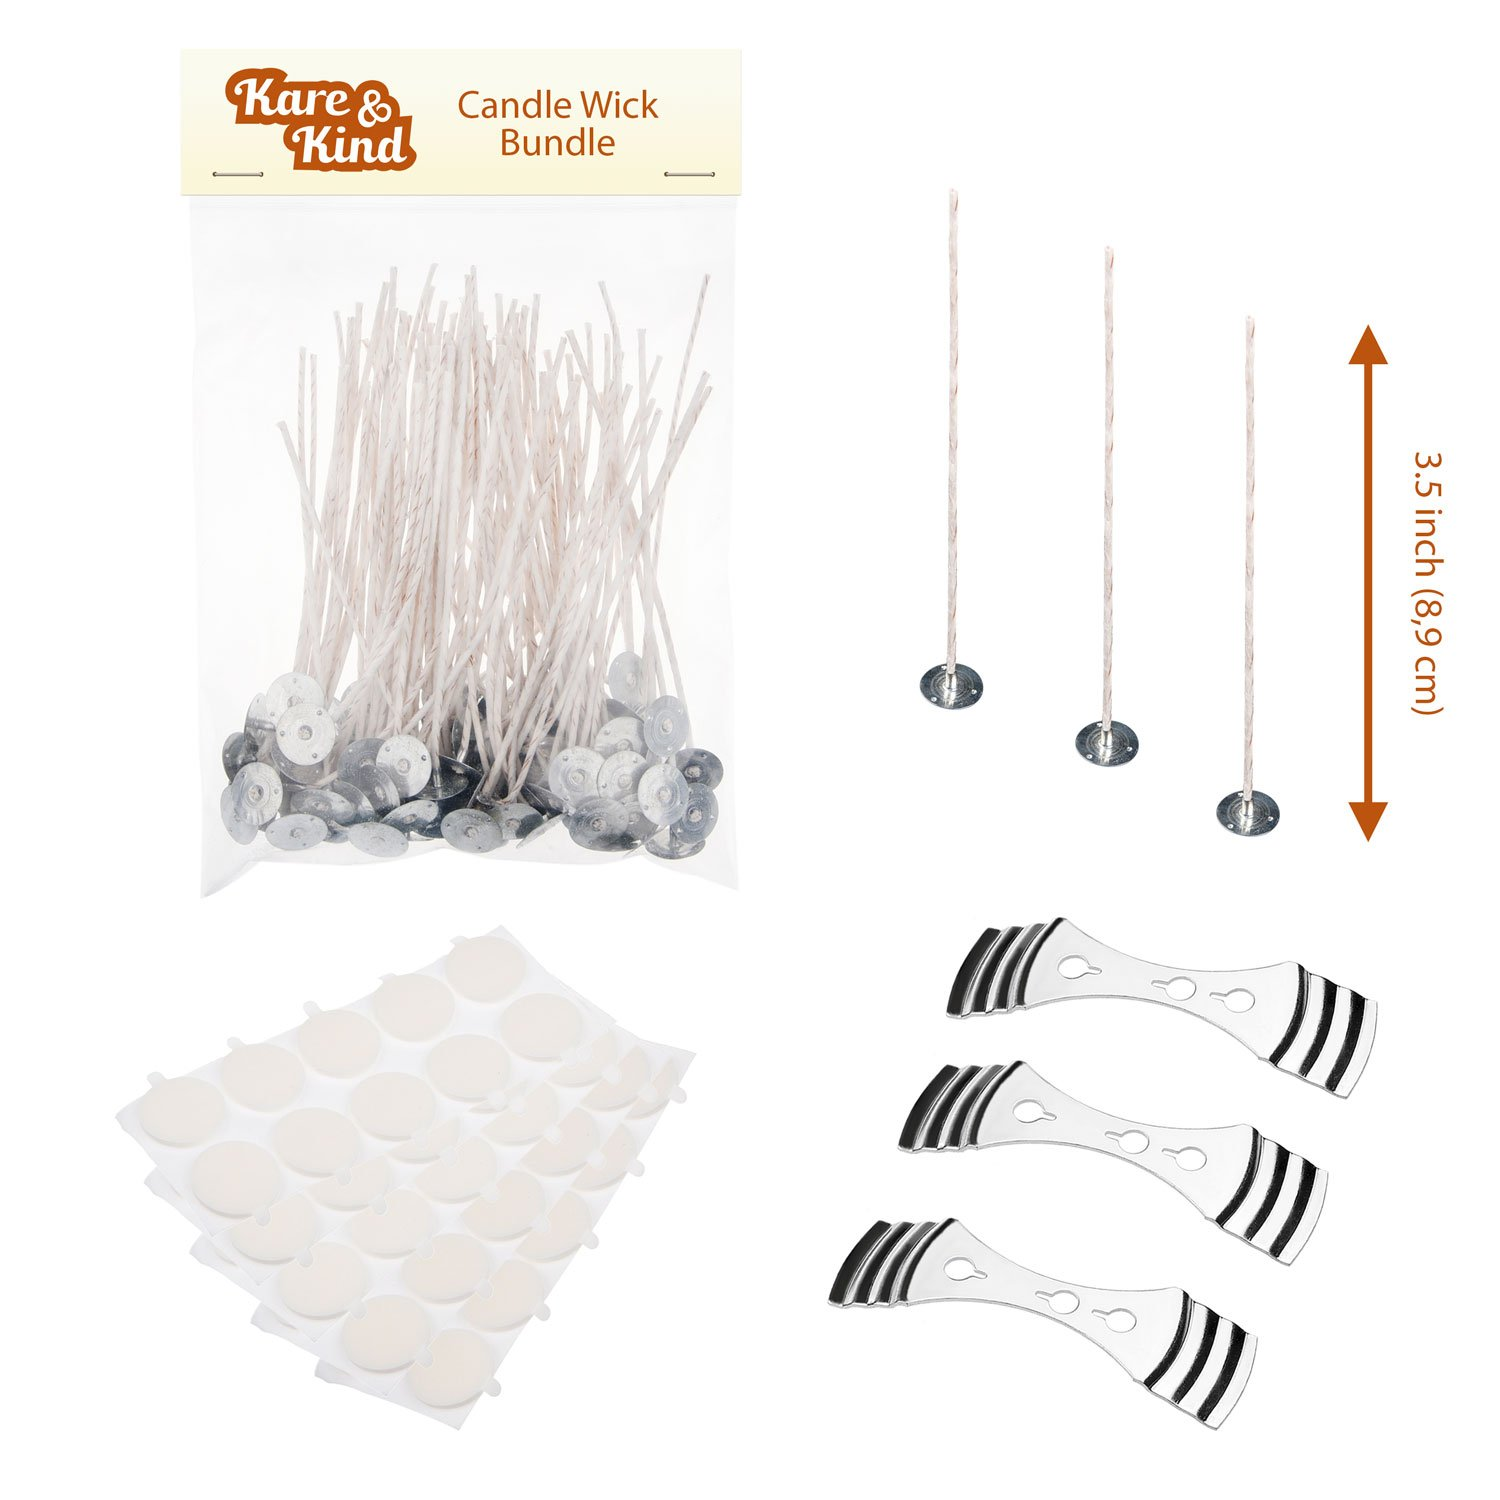 Candle Wick Bundle: 50 Candle Wicks, 50 Stickers and 3 Wick Holders - Easy Positioning - Wicks Coated With Natural Soy Wax, Cotton Threads Woven with Paper - Contains No Lead, Zinc or Other Metals Kare & Kind 6271003